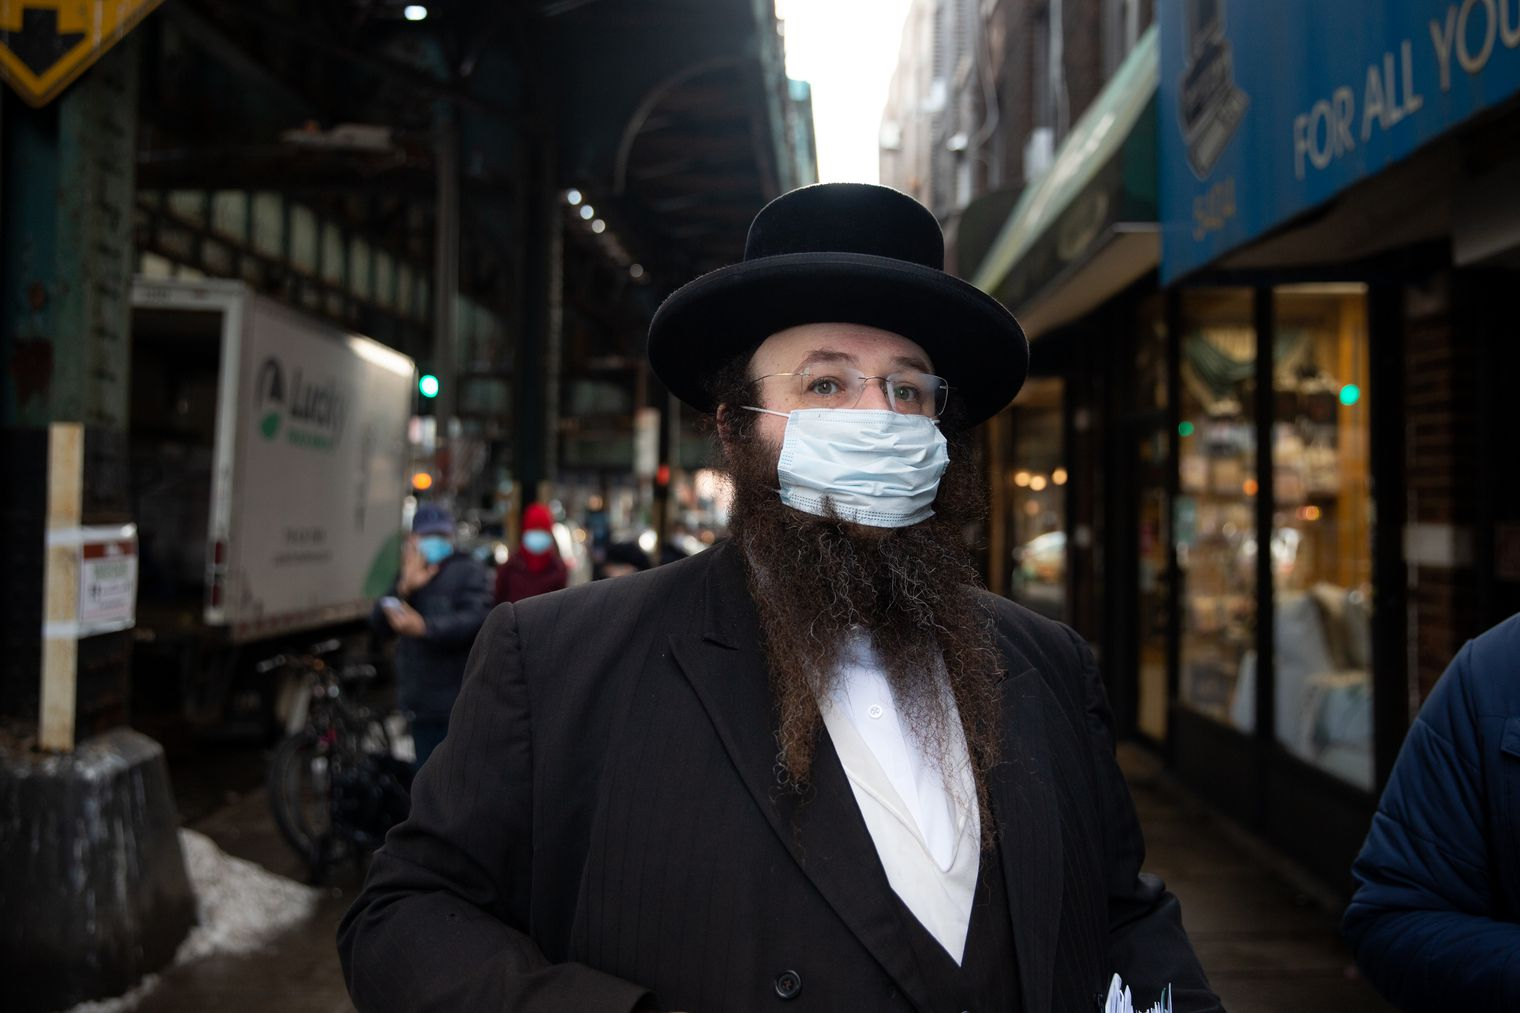 Masbia ED Alexander Rapapor hopes to expands Masbia location to reach out to more people in need due to the pandemic